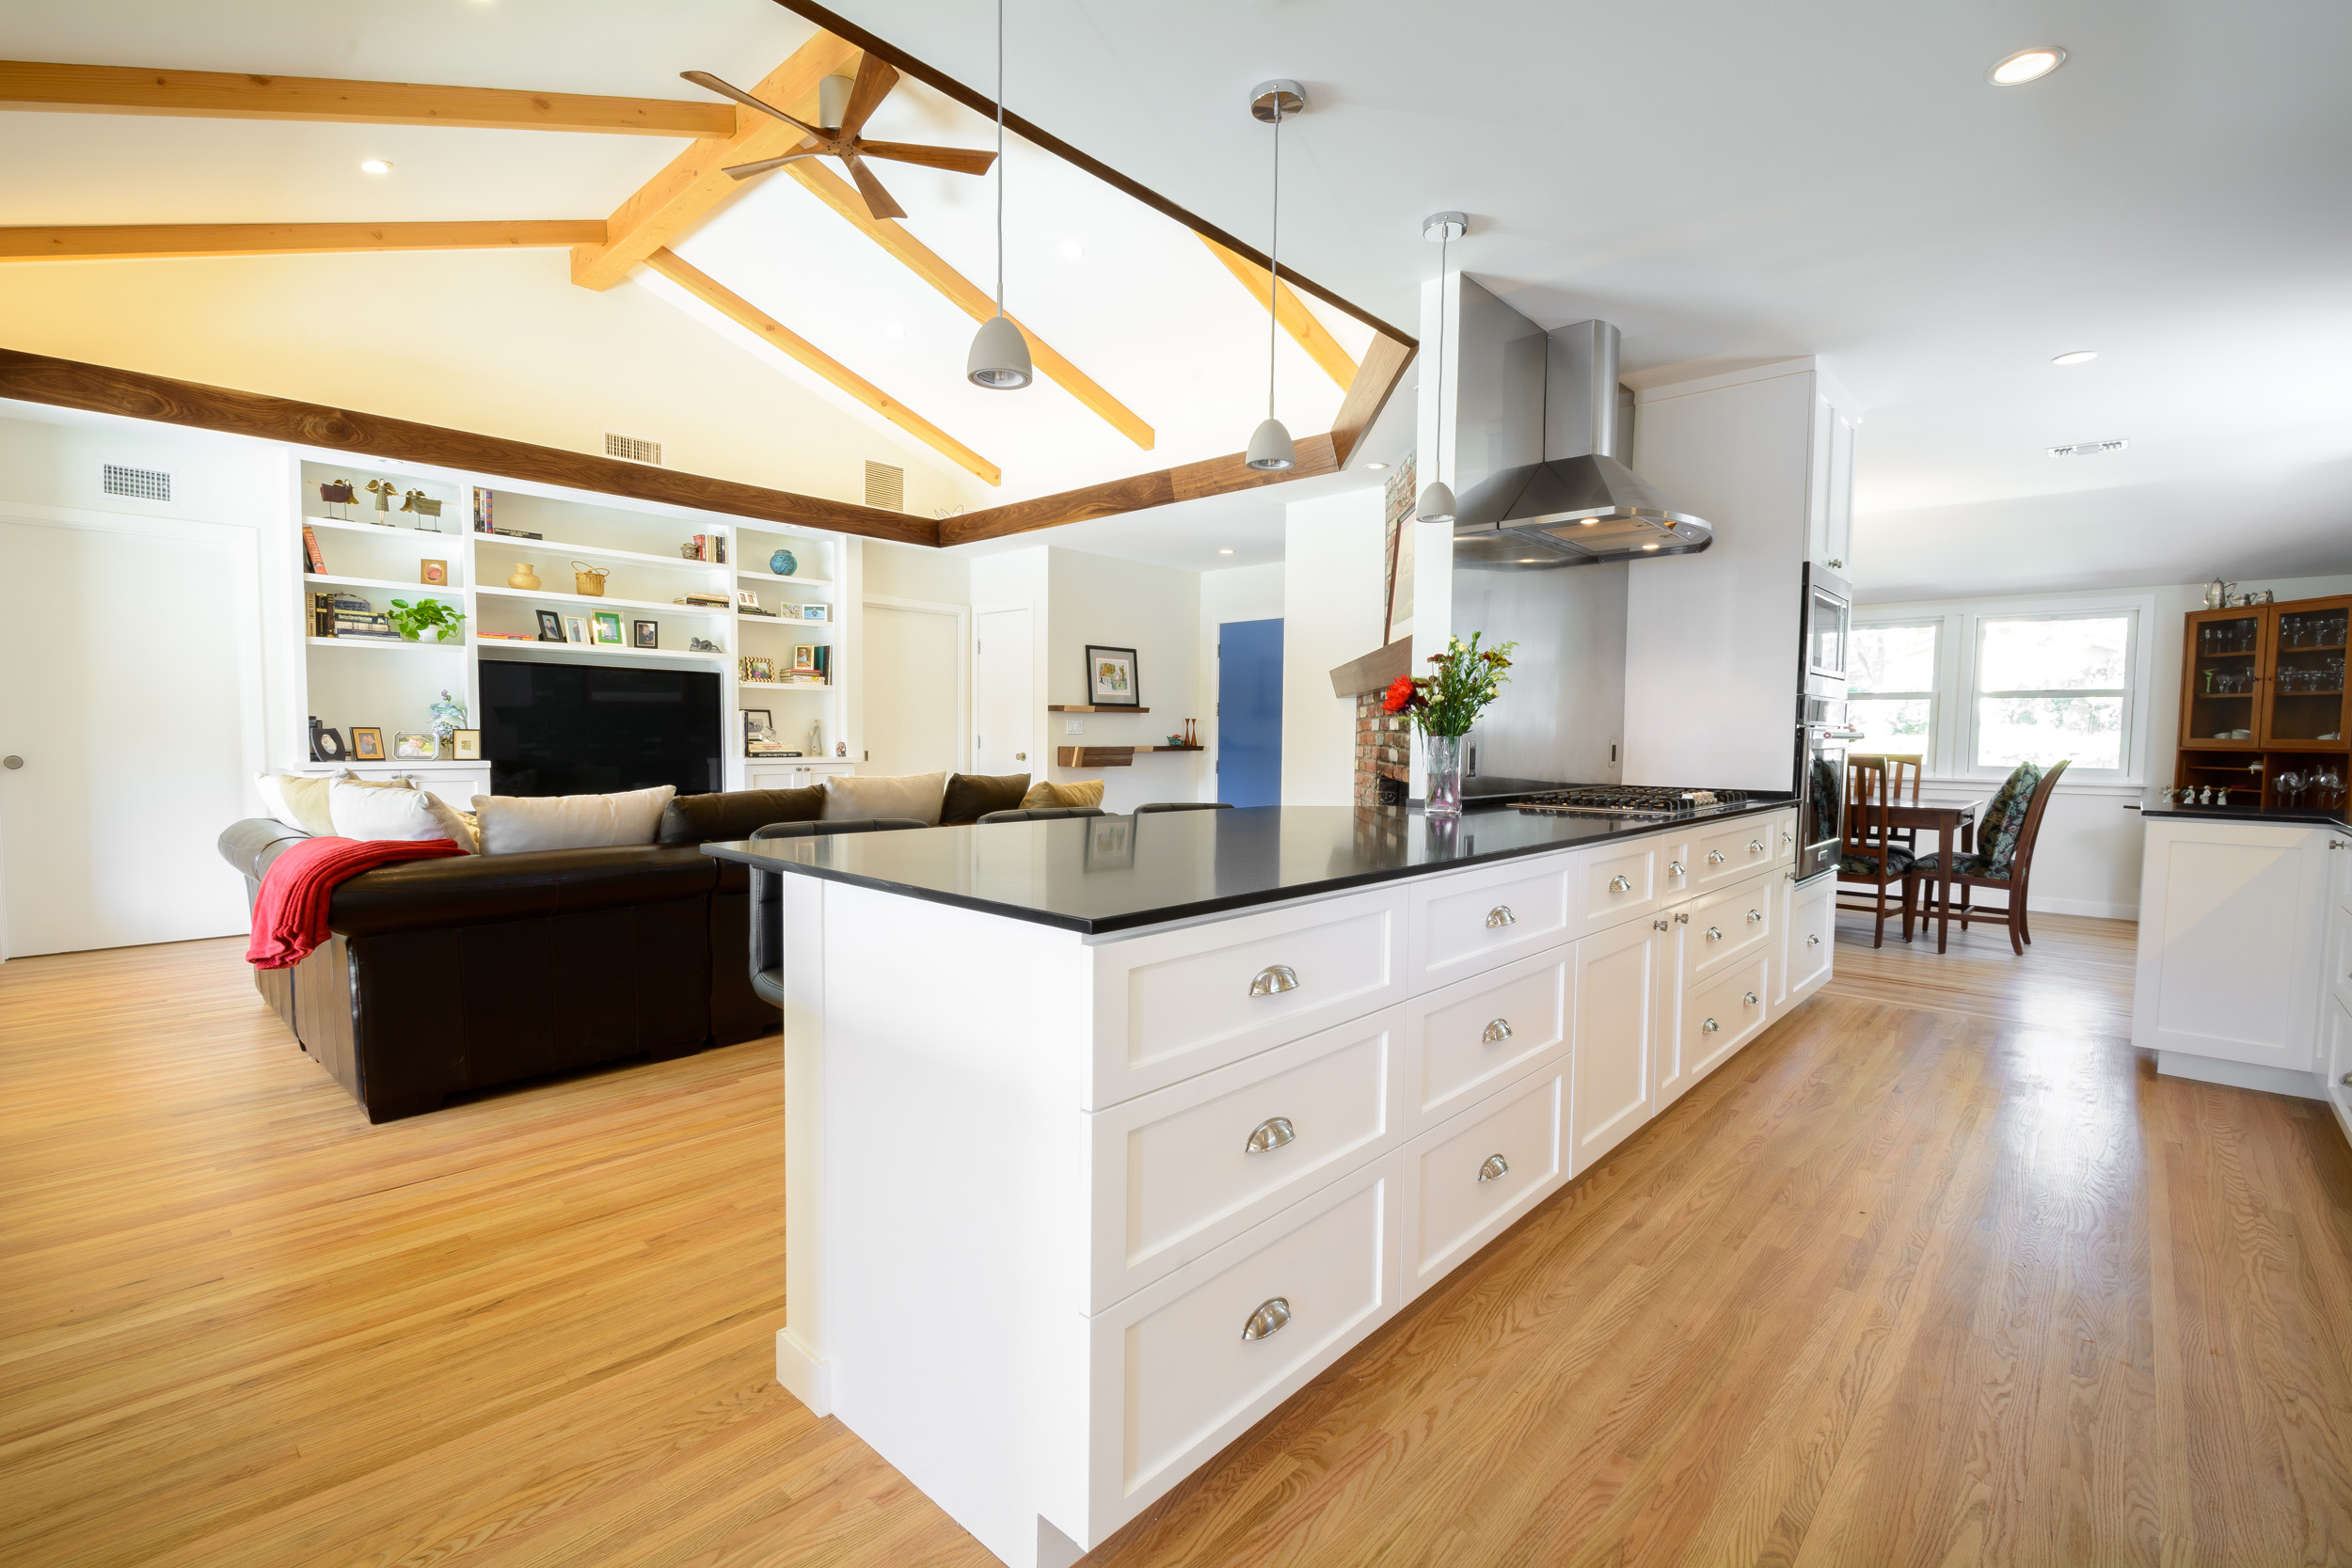 This open kitchen floor plan giving onto the living and dining rooms creates an overall bright and inviting space as well as an easy flow for this Claremont mid-century ranch residence